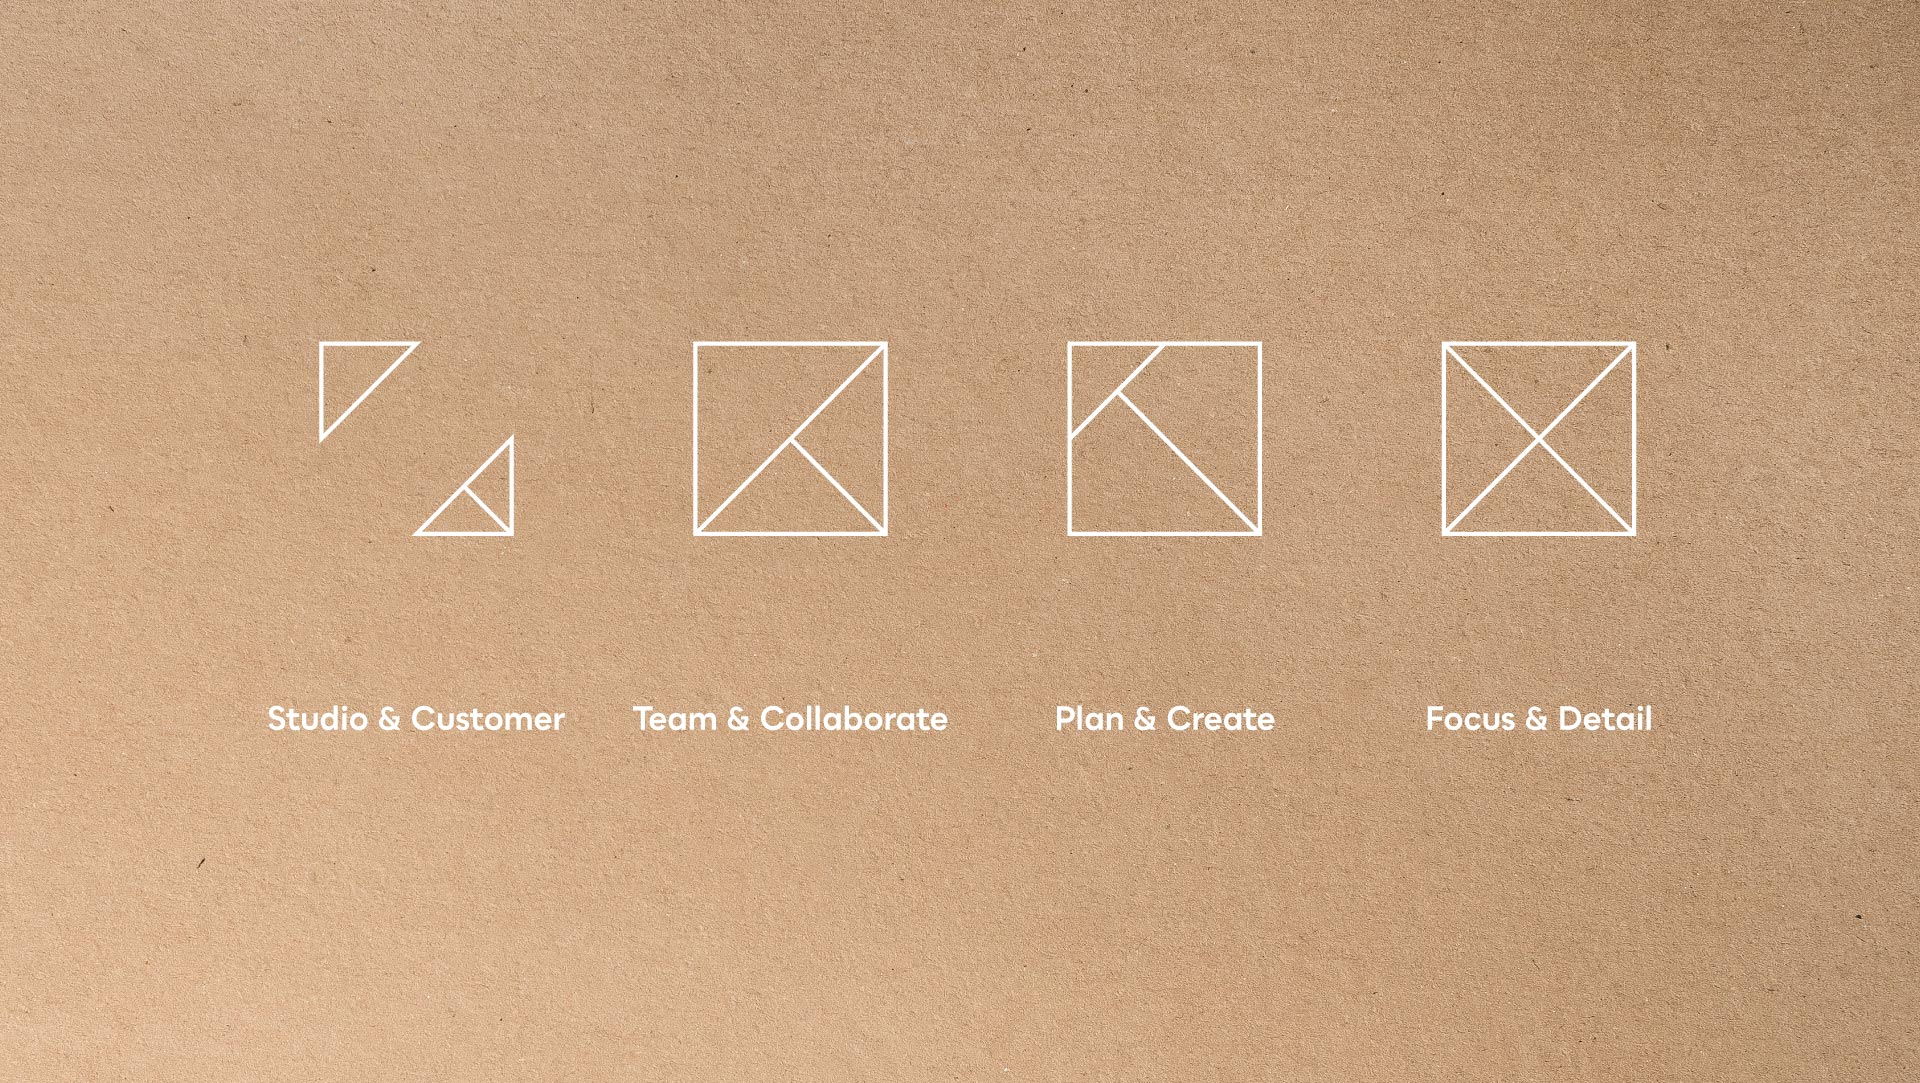 Architects branding concept of thinking behind the core brand.